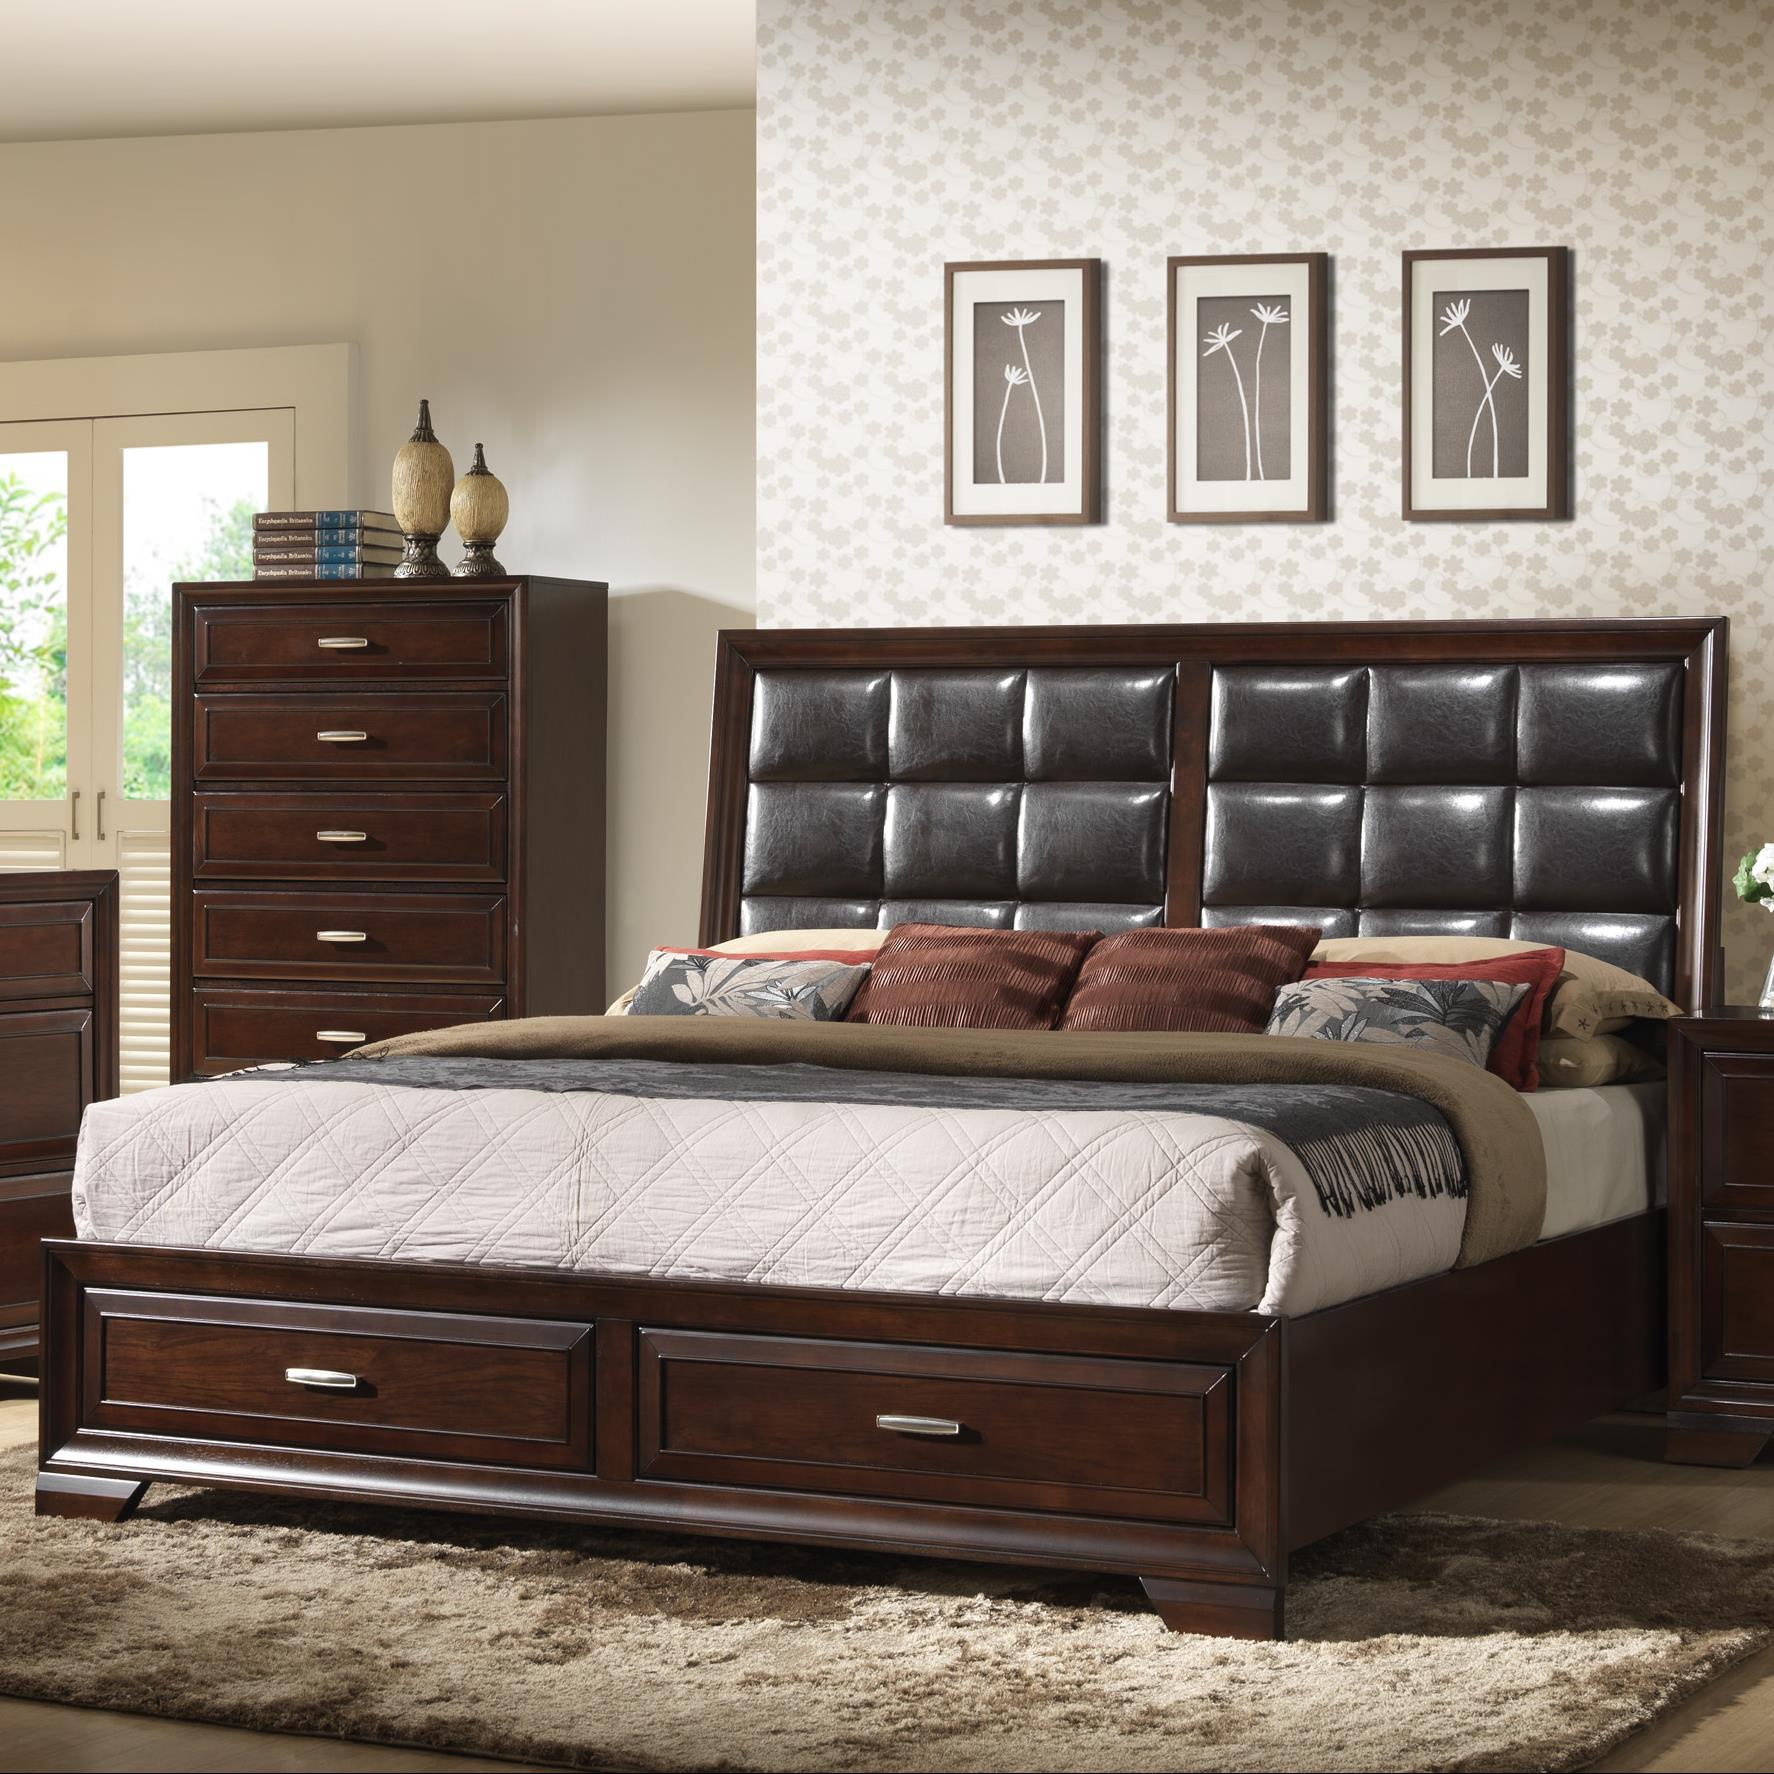 furniture storage ashley coleman king kira htm from bed